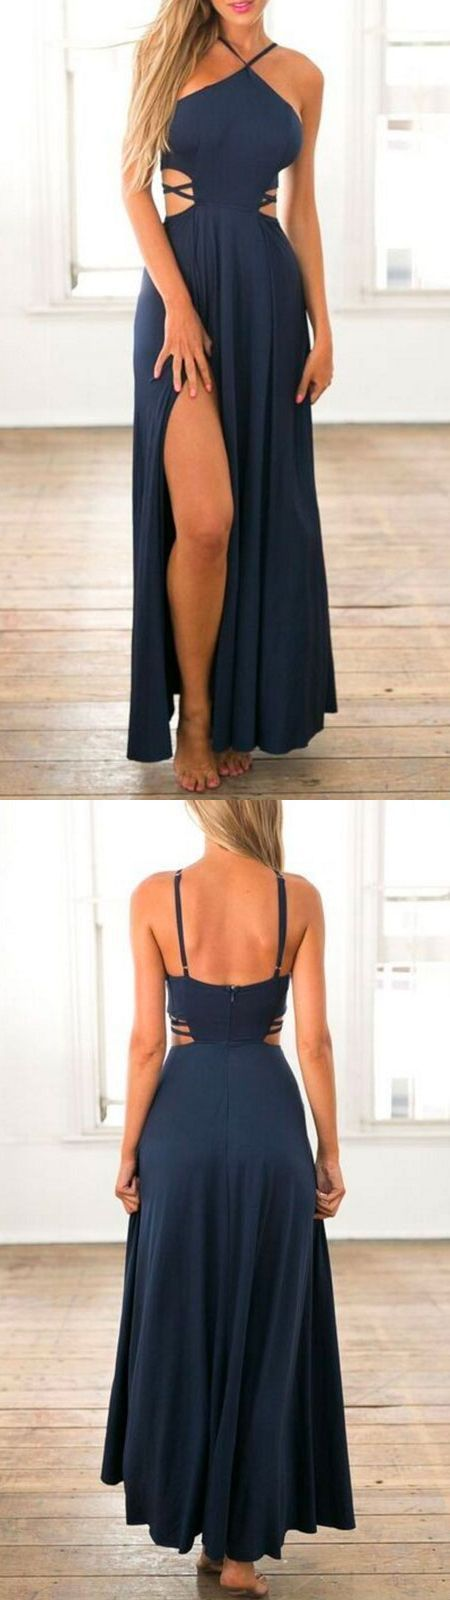 F0042 Sexy A-Line Halter Sleeveless Navy Blue Long Prom Dress